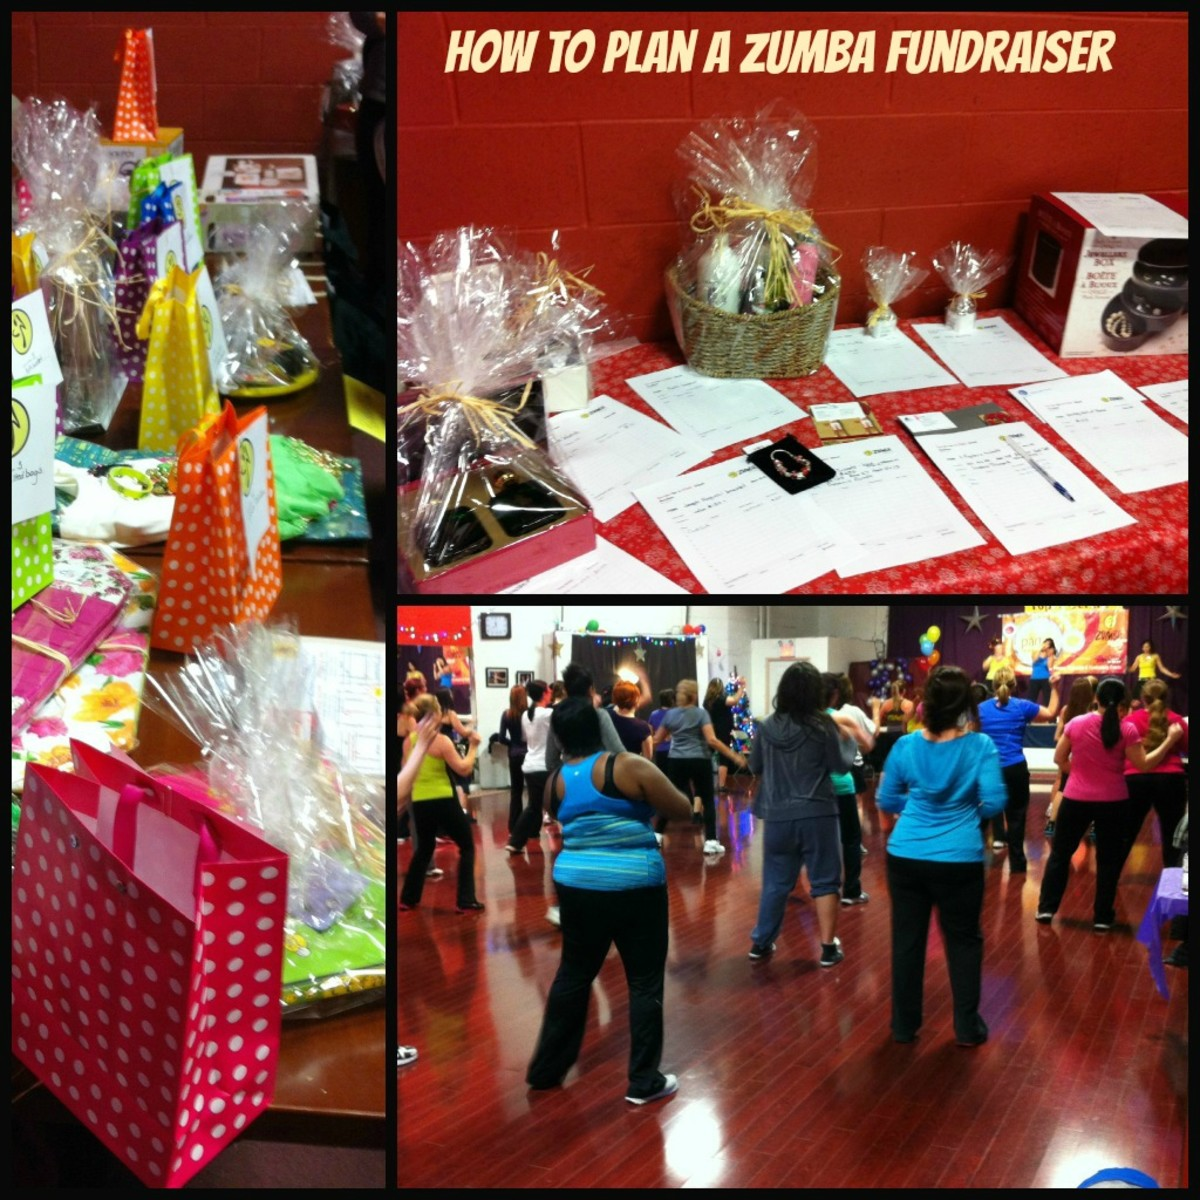 Zumba fundraisers are a fun and unique way to raise funds for your organization.